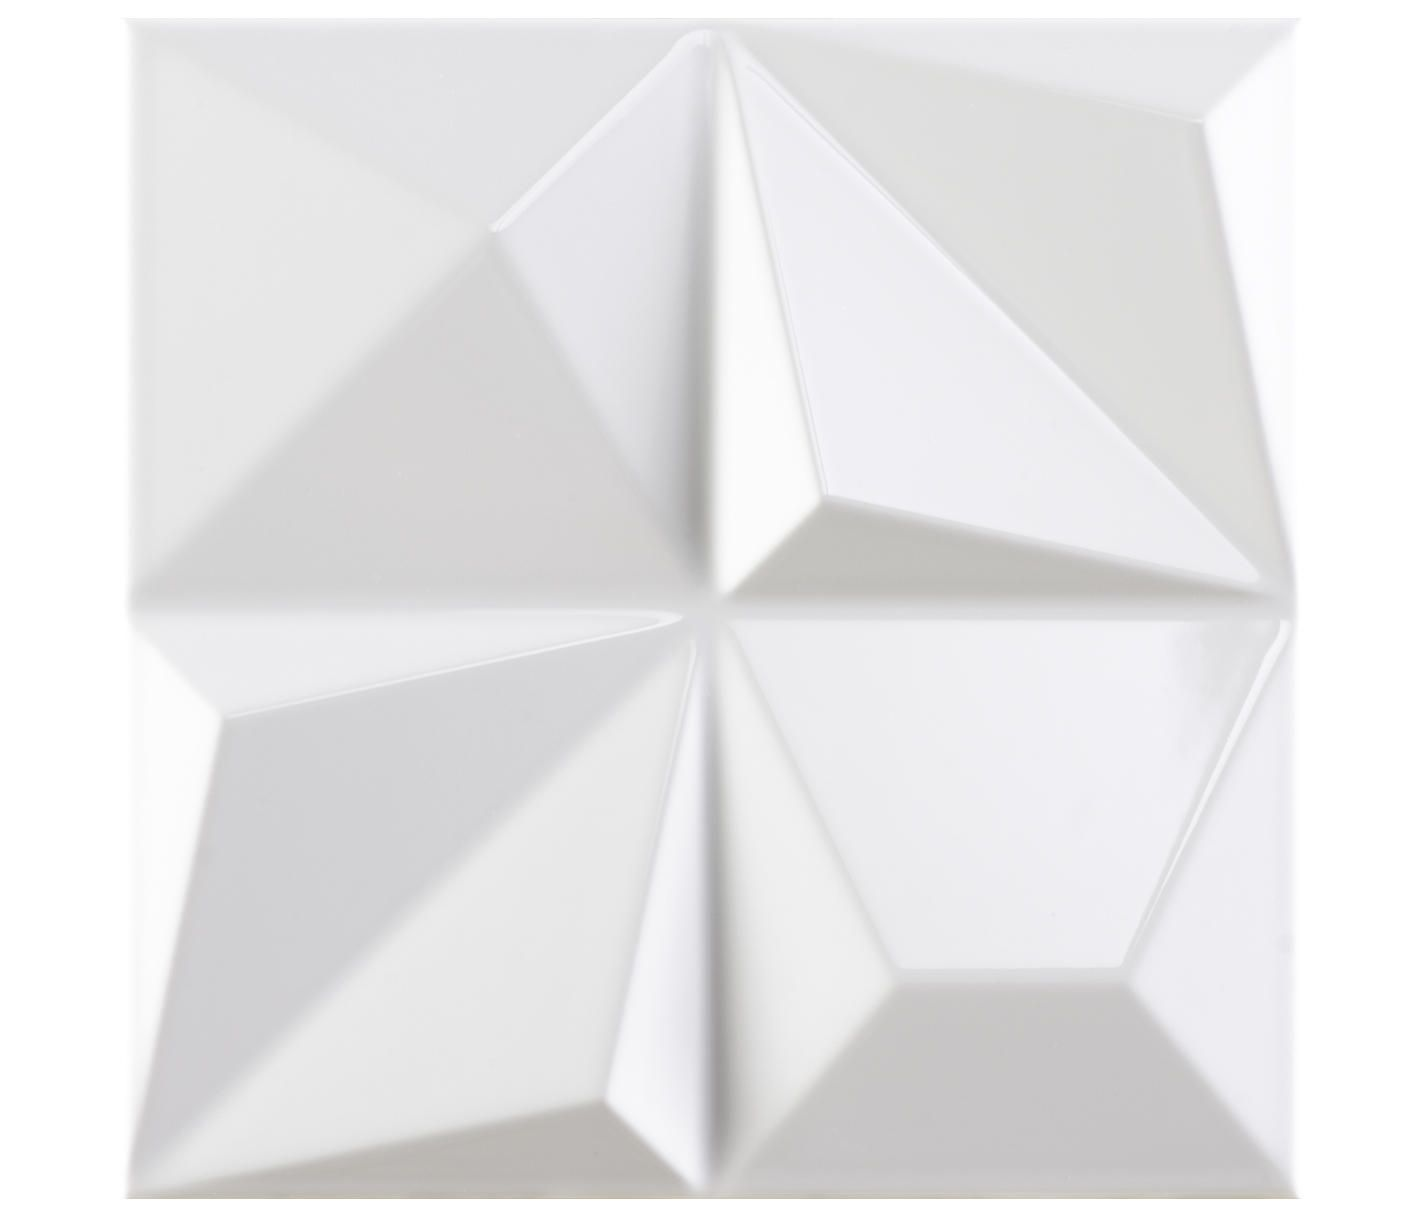 Shapes multishapes white gloss by dune cermica ceramic tiles shapes multishapes white gloss ceramic tiles from dune cermica architonic dailygadgetfo Gallery